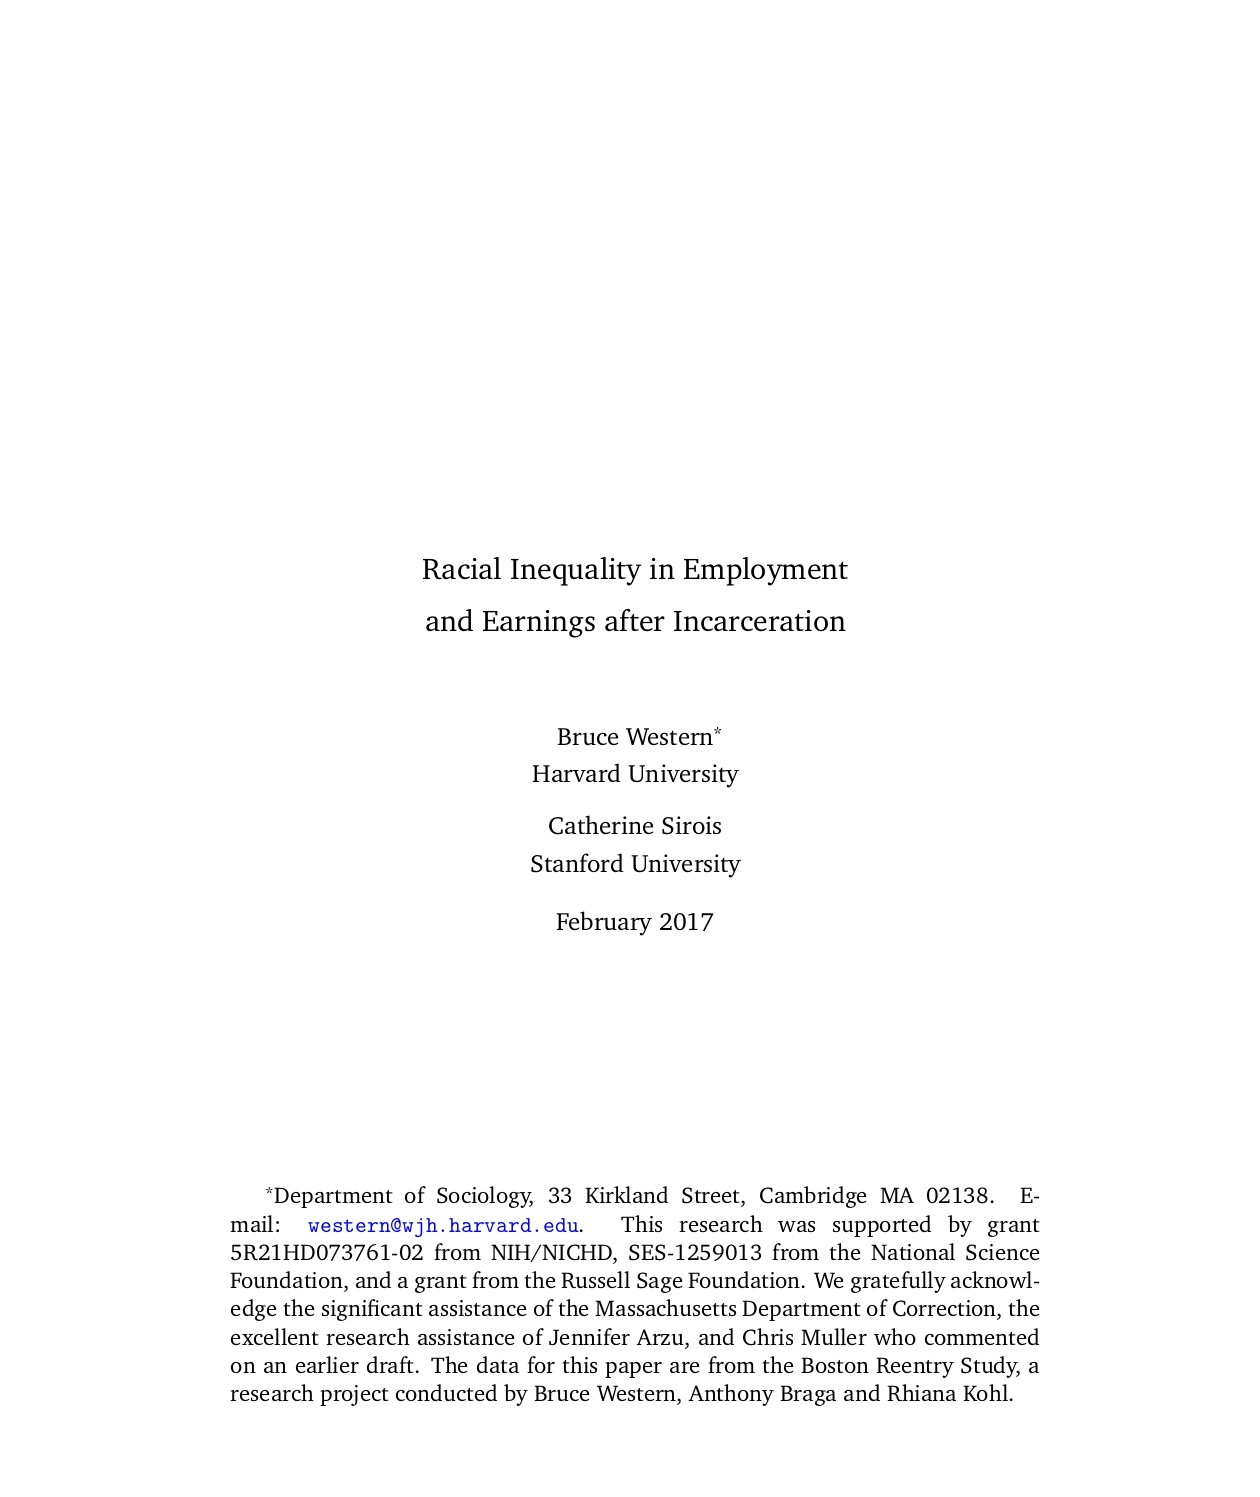 Racial Inequality in Employment and Earnings after Incarceration